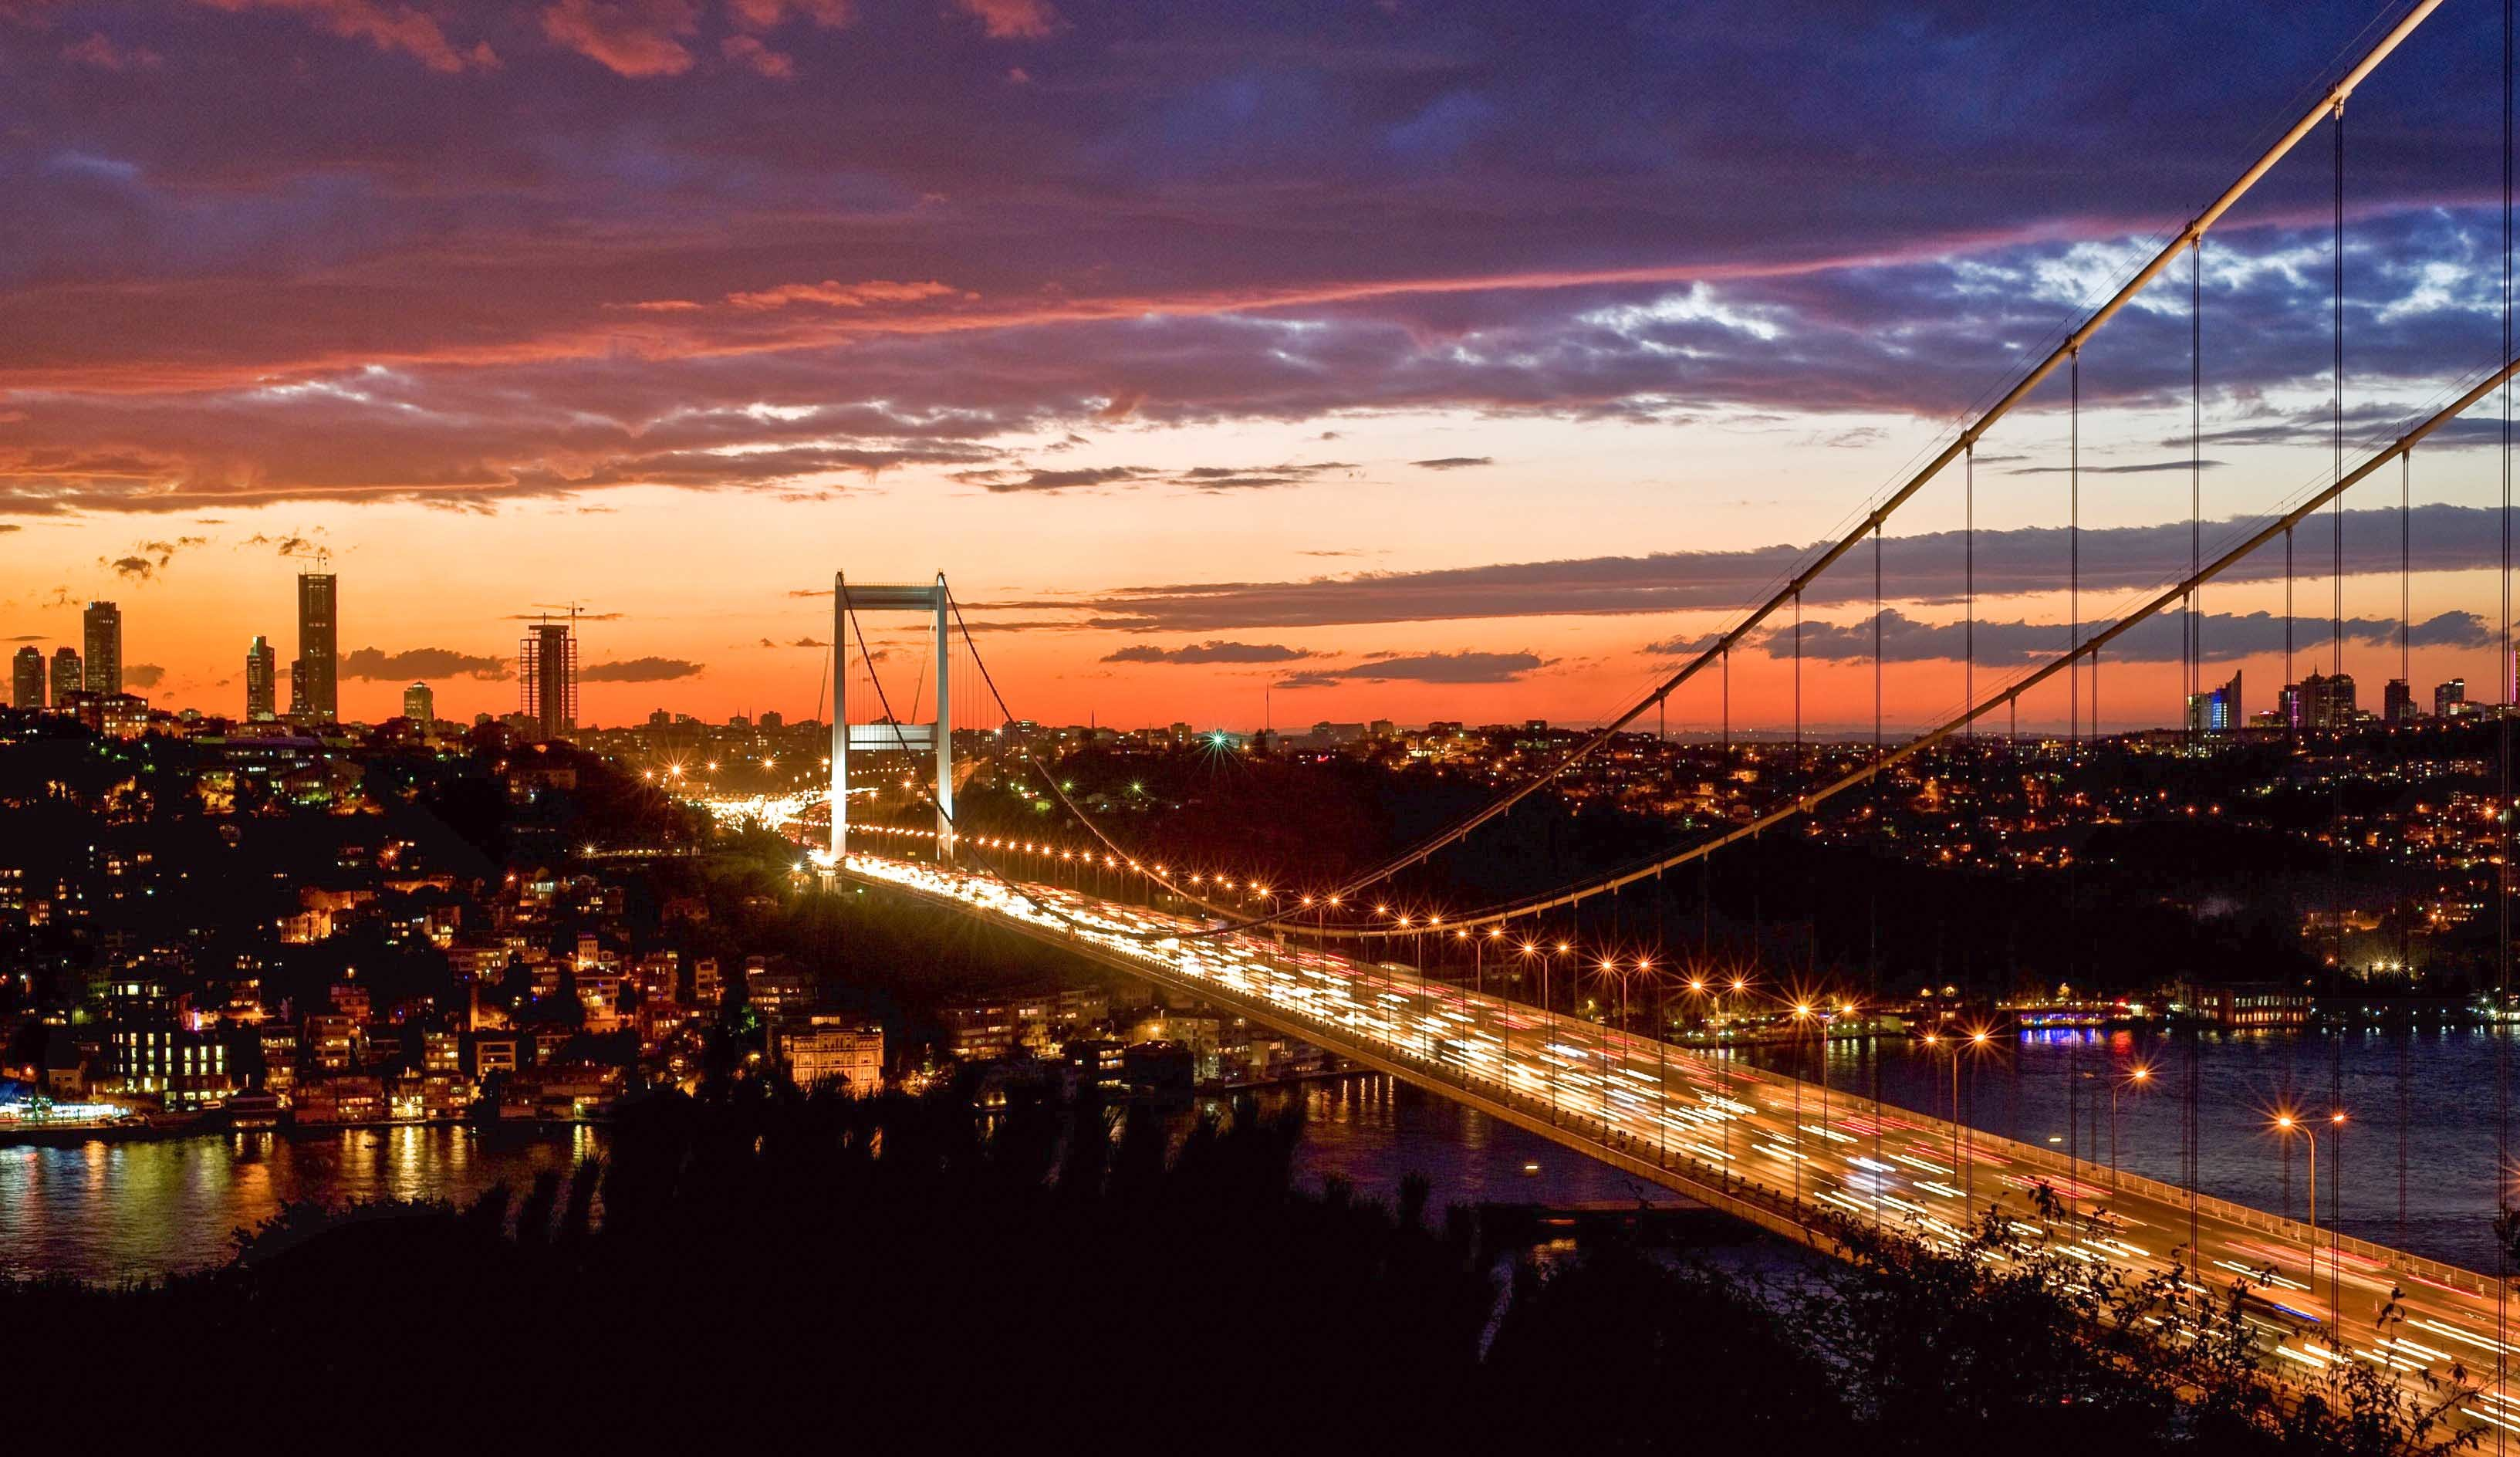 Res: 3266x1888, Istanbul, Turkey Wallpapers in 4K - All HD Wallpapers